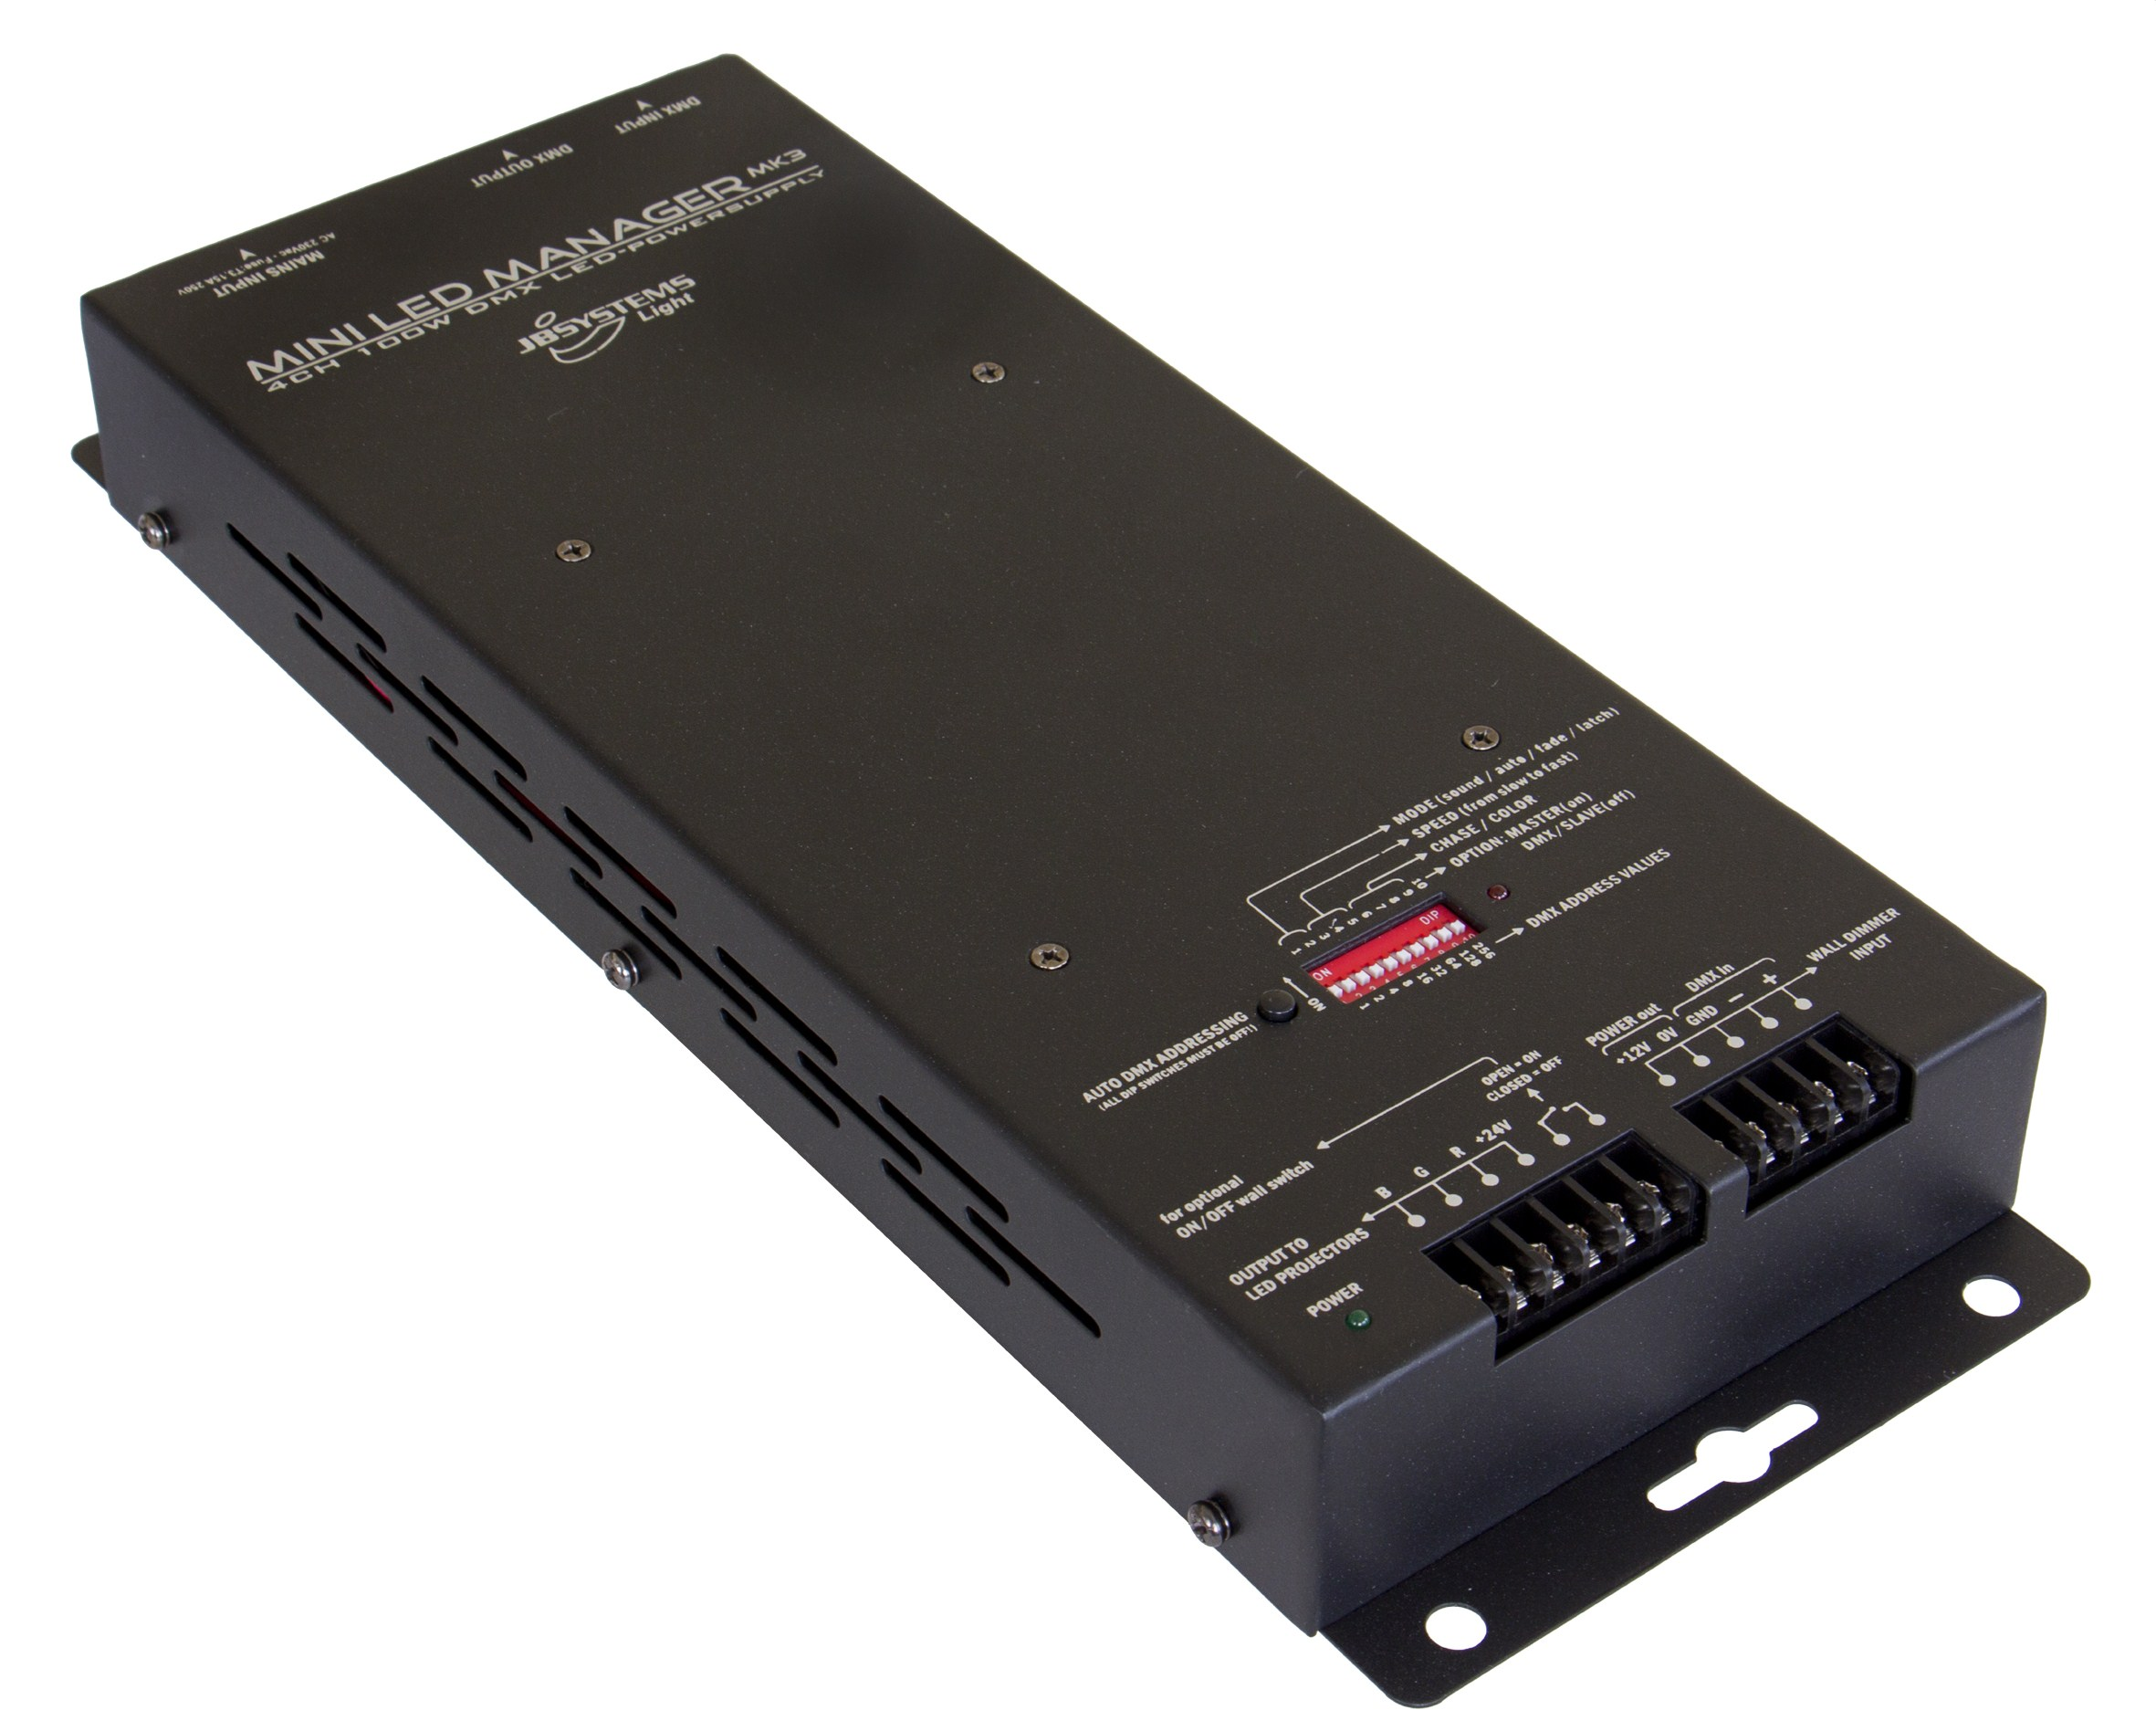 Jb Systems Mini Led Manager Mk3 Controller And Psu The Dmx Power Over Cat5 System Is Not To Be Confused With